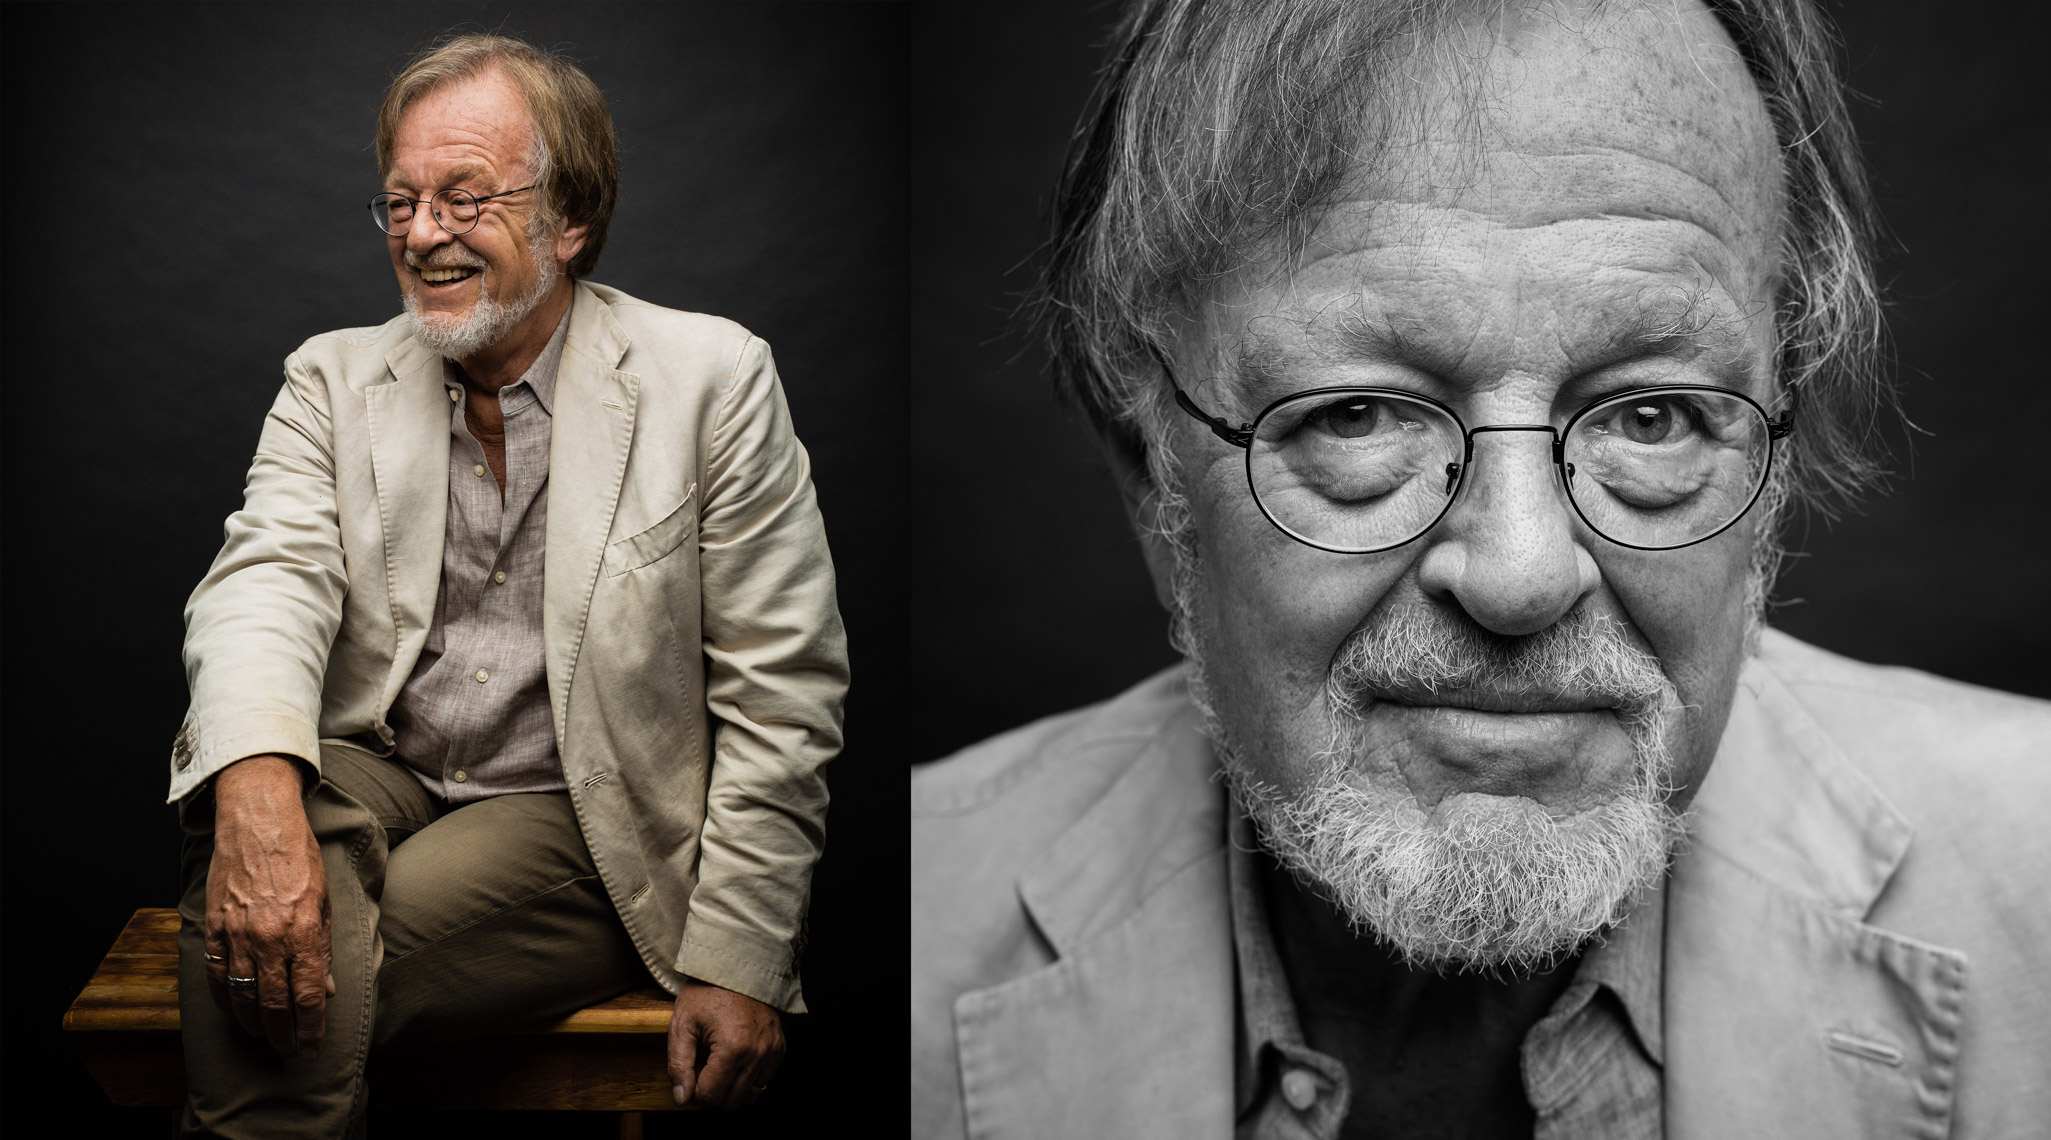 Bernard Cornwell - Author